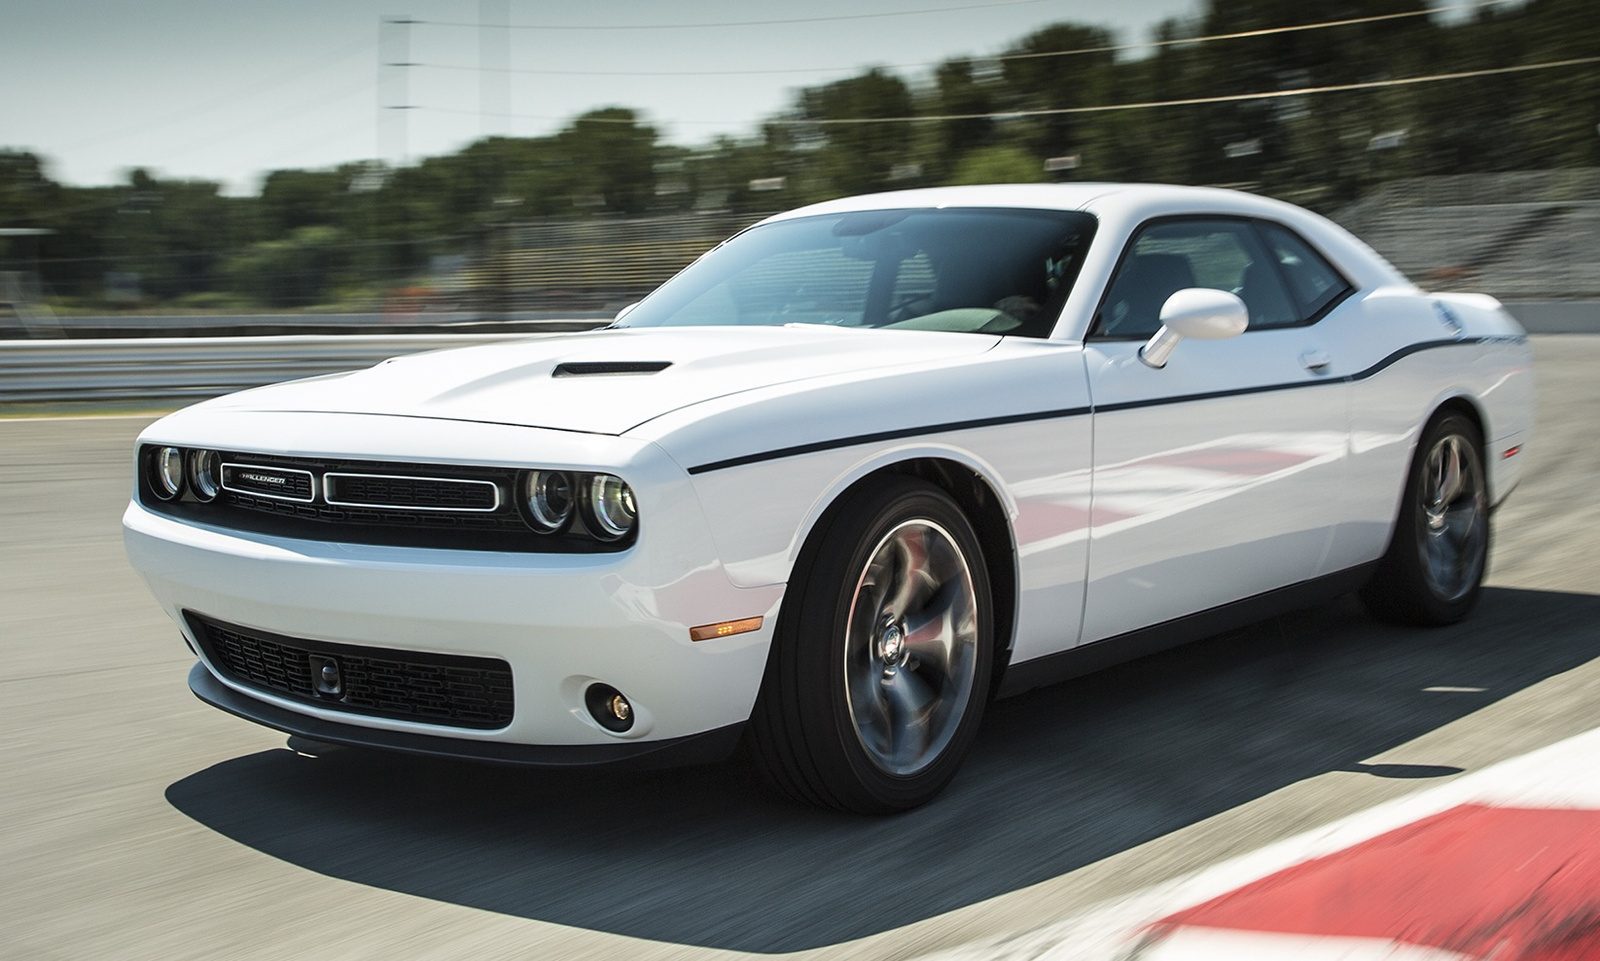 2011 Challenger Cult Energy Custom 2009 Dodge Challenger SRT8